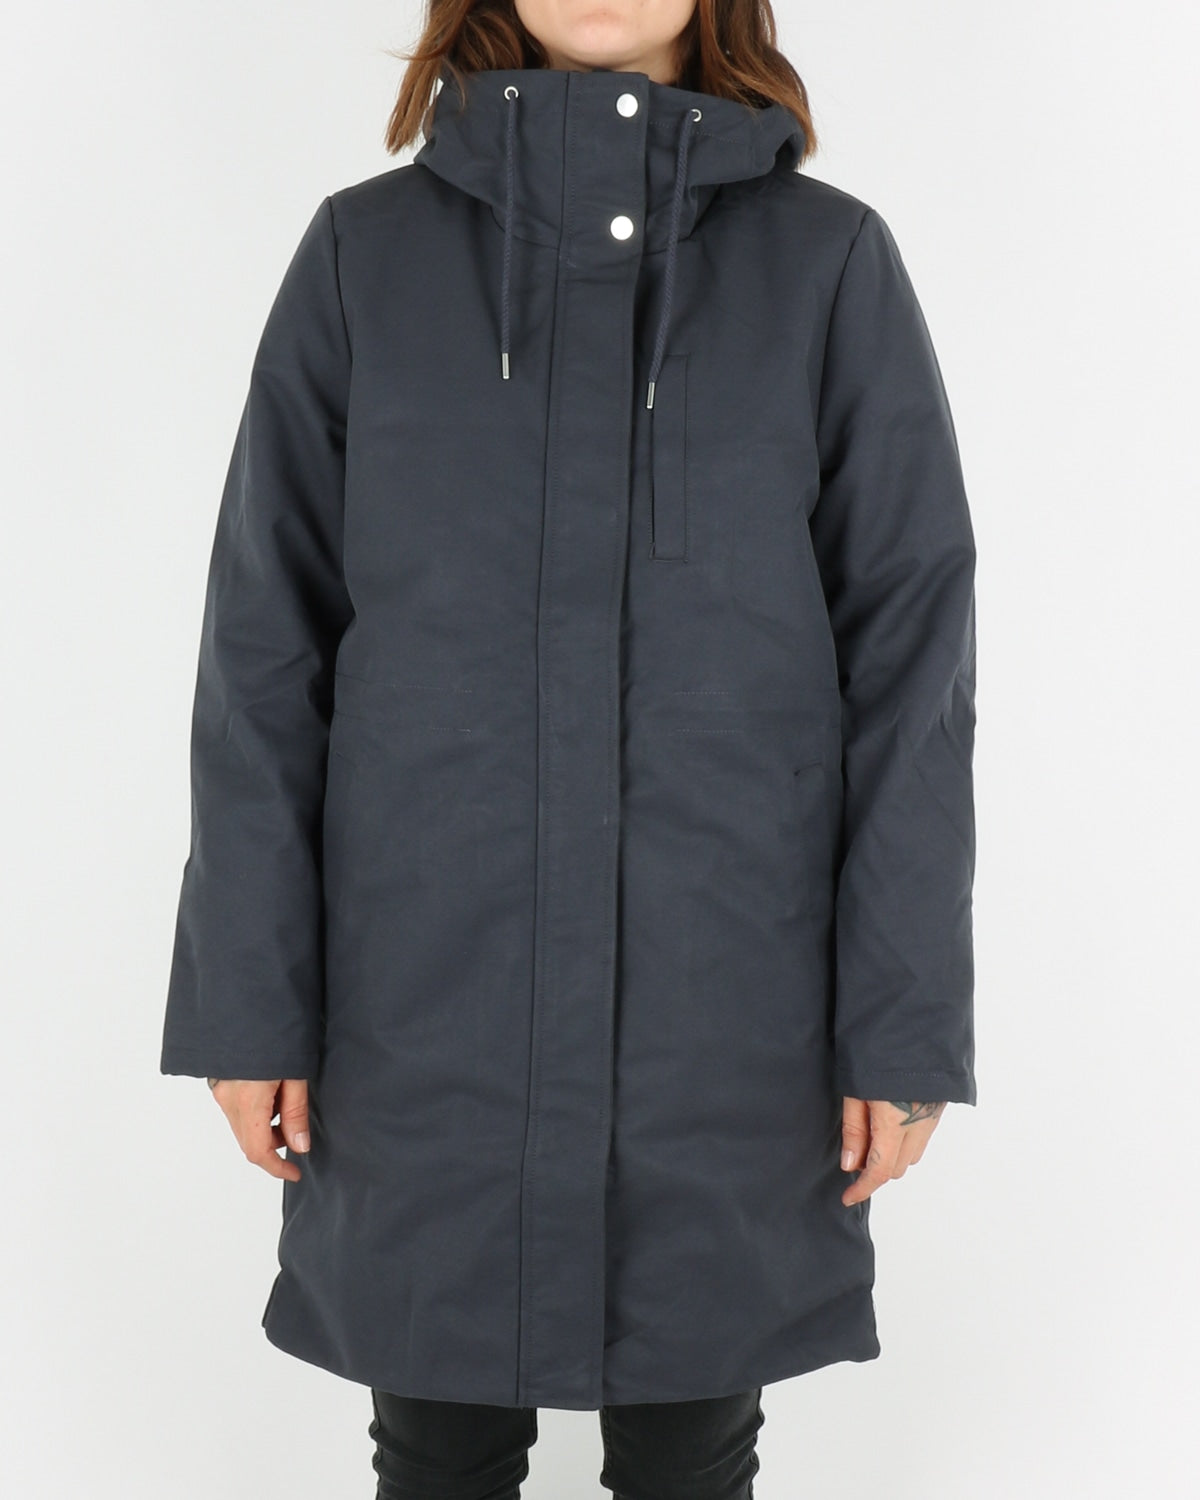 selfhood_parka jacket 77130_navy_1_4